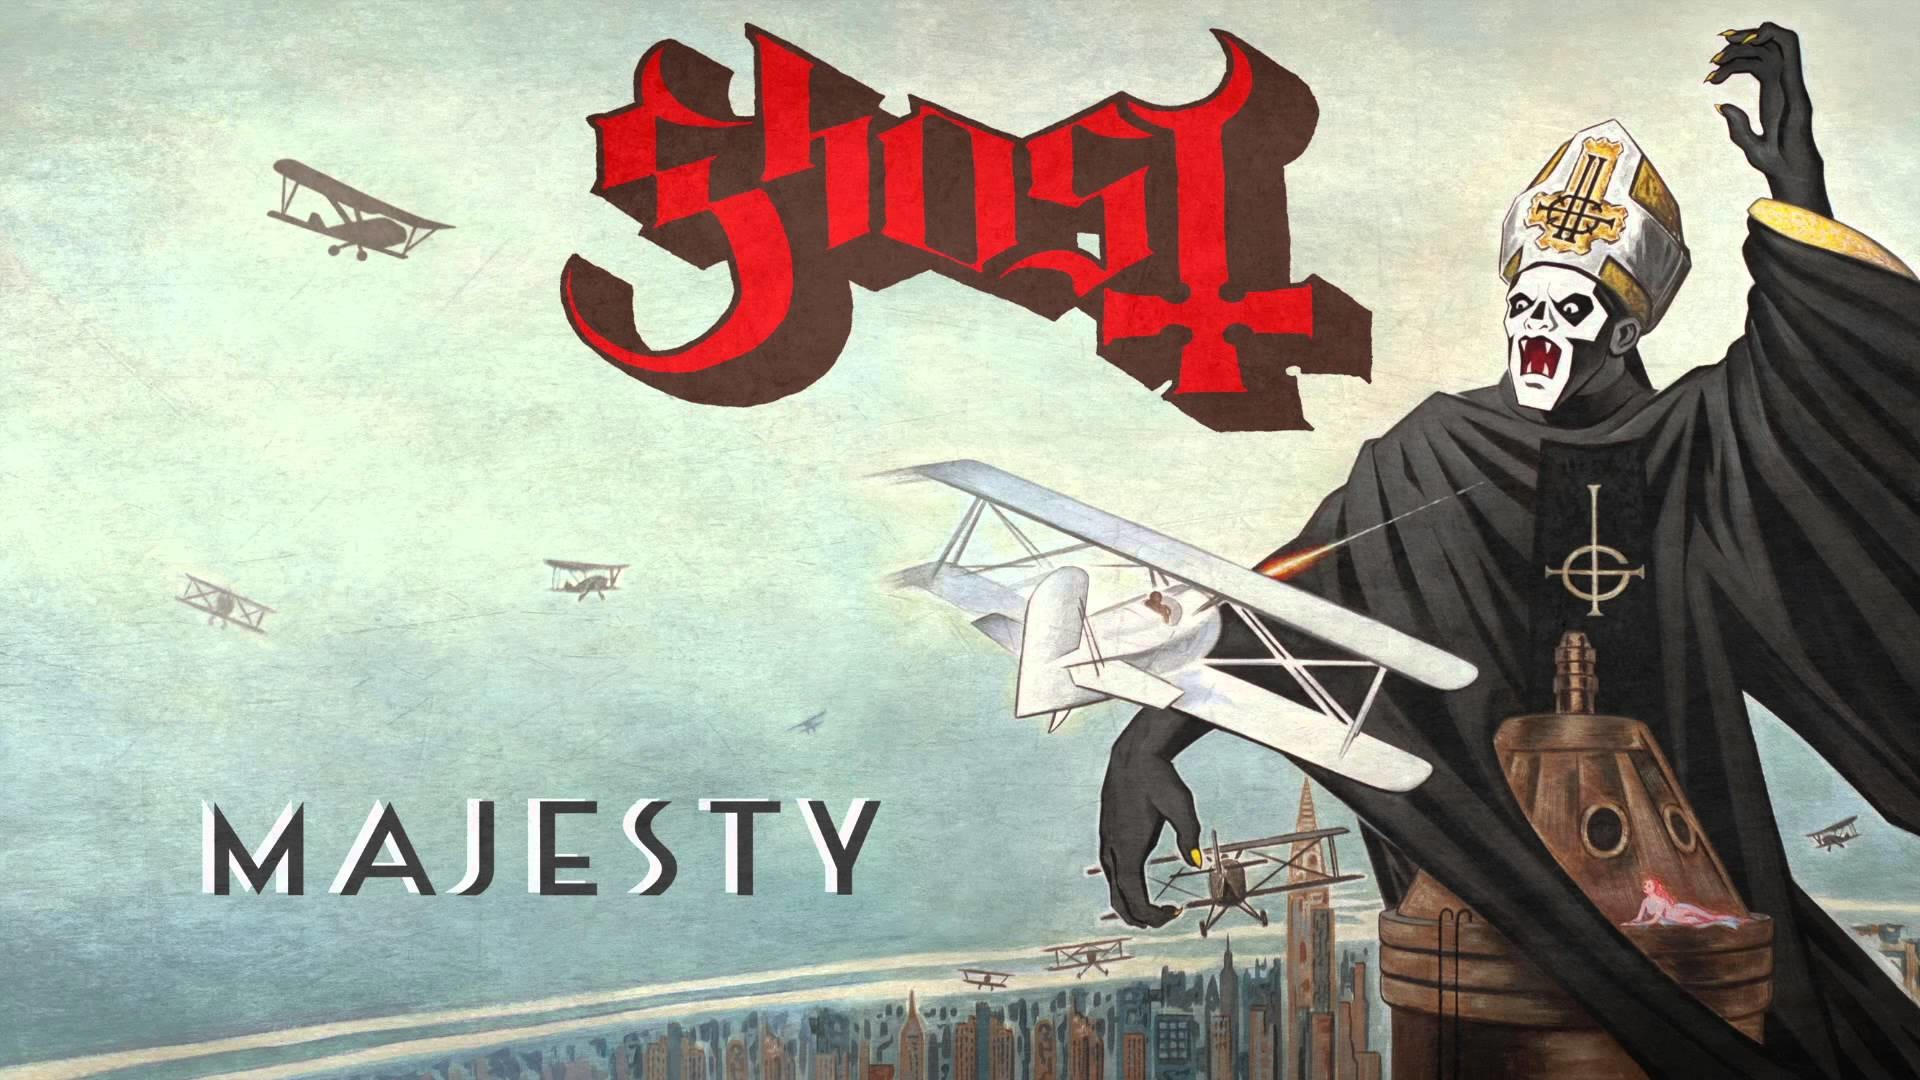 Res: 1920x1080, Swedish heavy metal band Ghost announce the Unholy/Unplugged tour